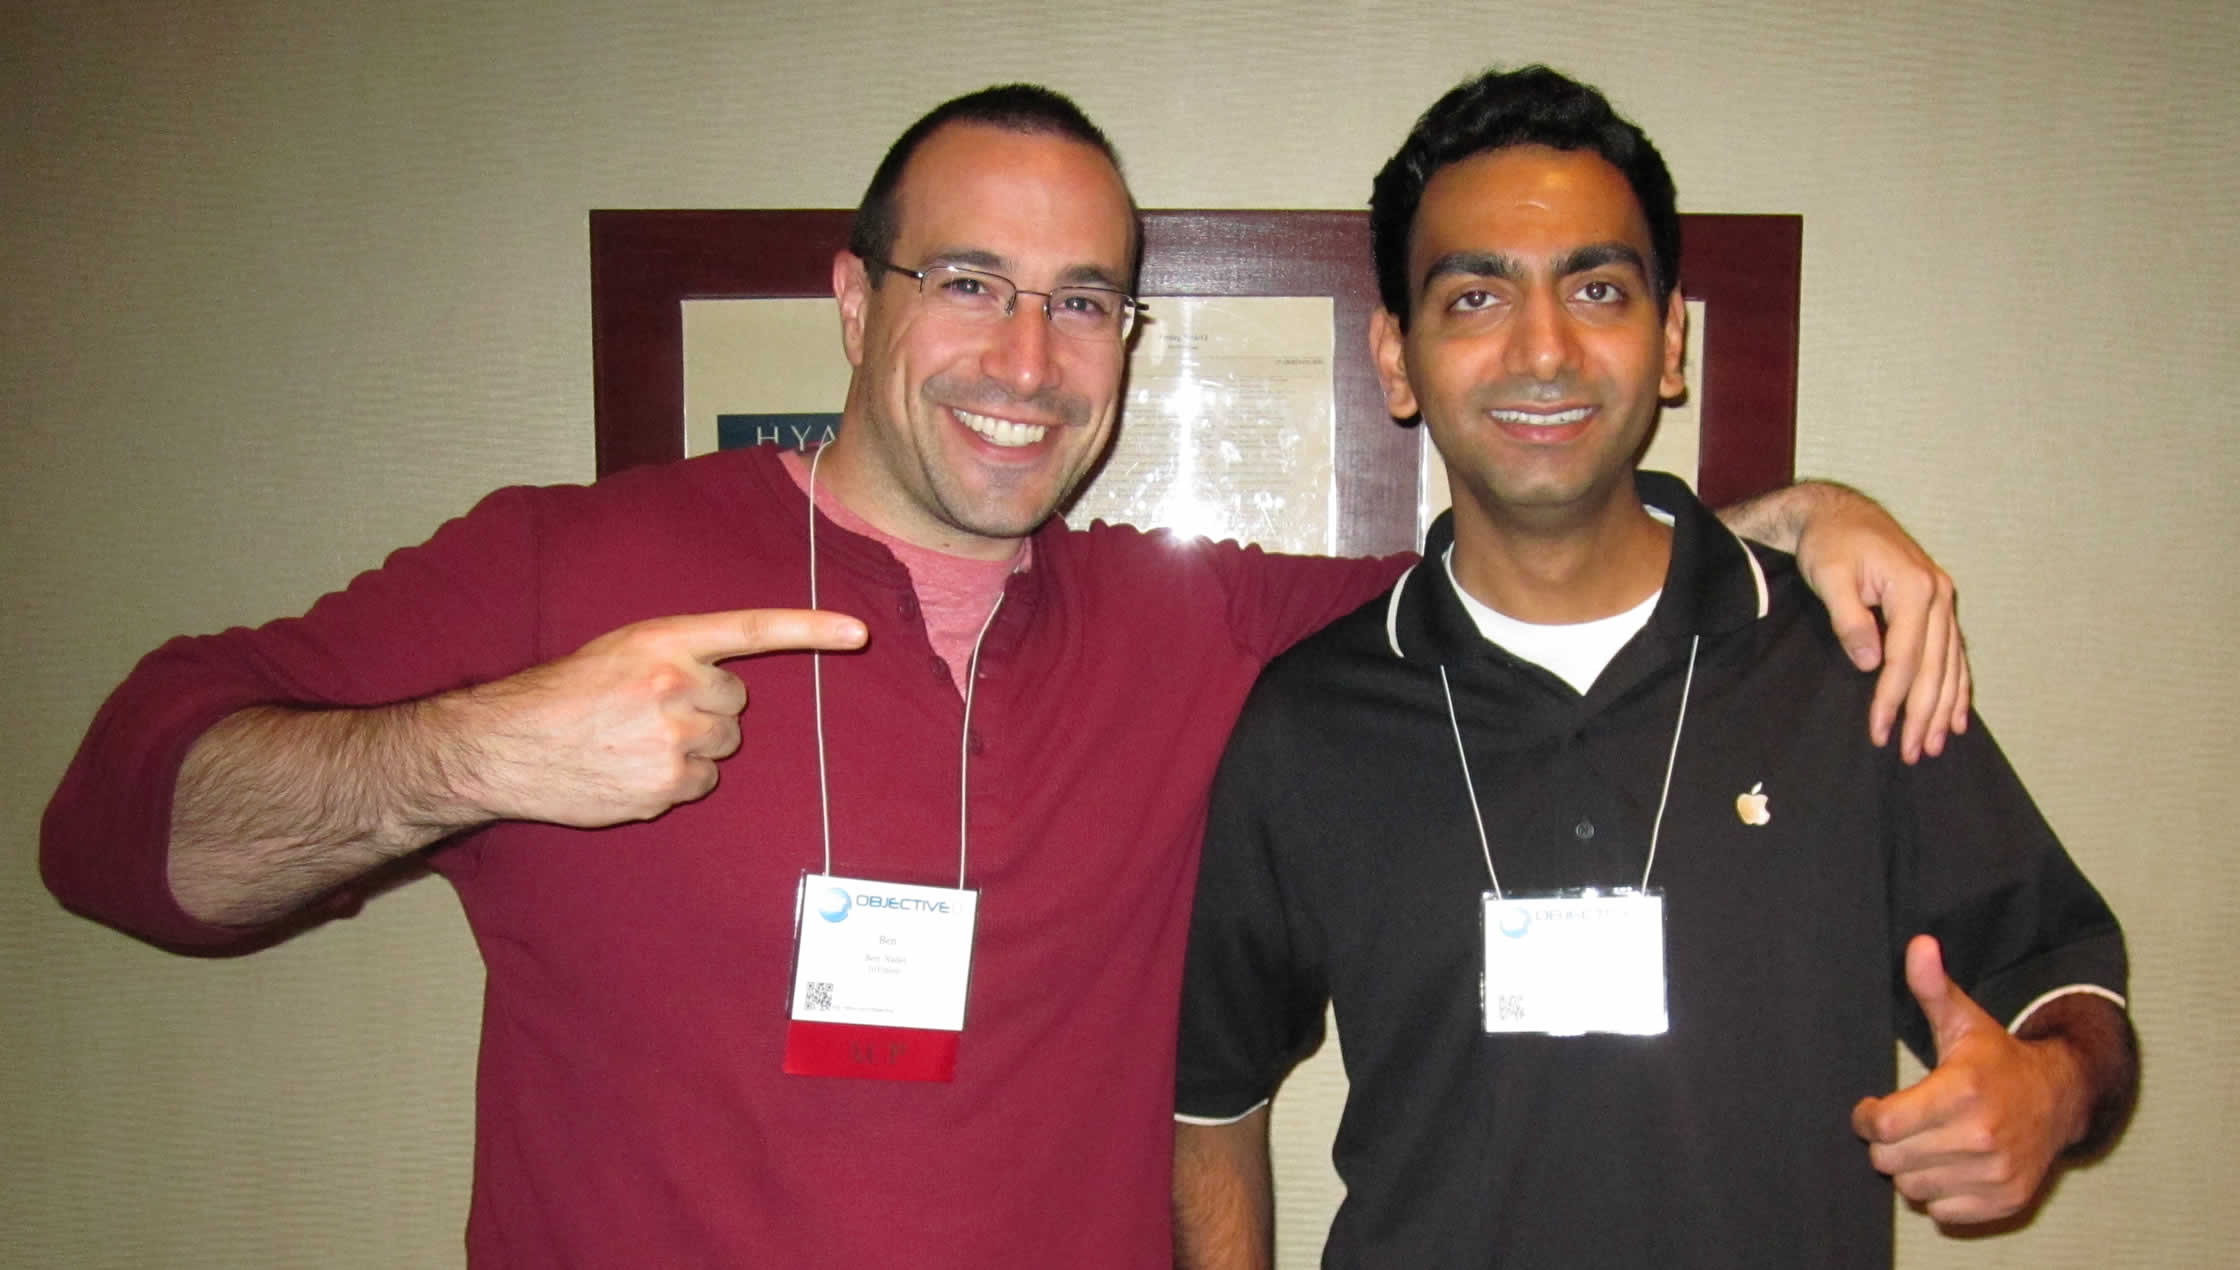 Ben Nadel at cf.Objective() 2012 (Minneapolis, MN) with: Rachit Arora